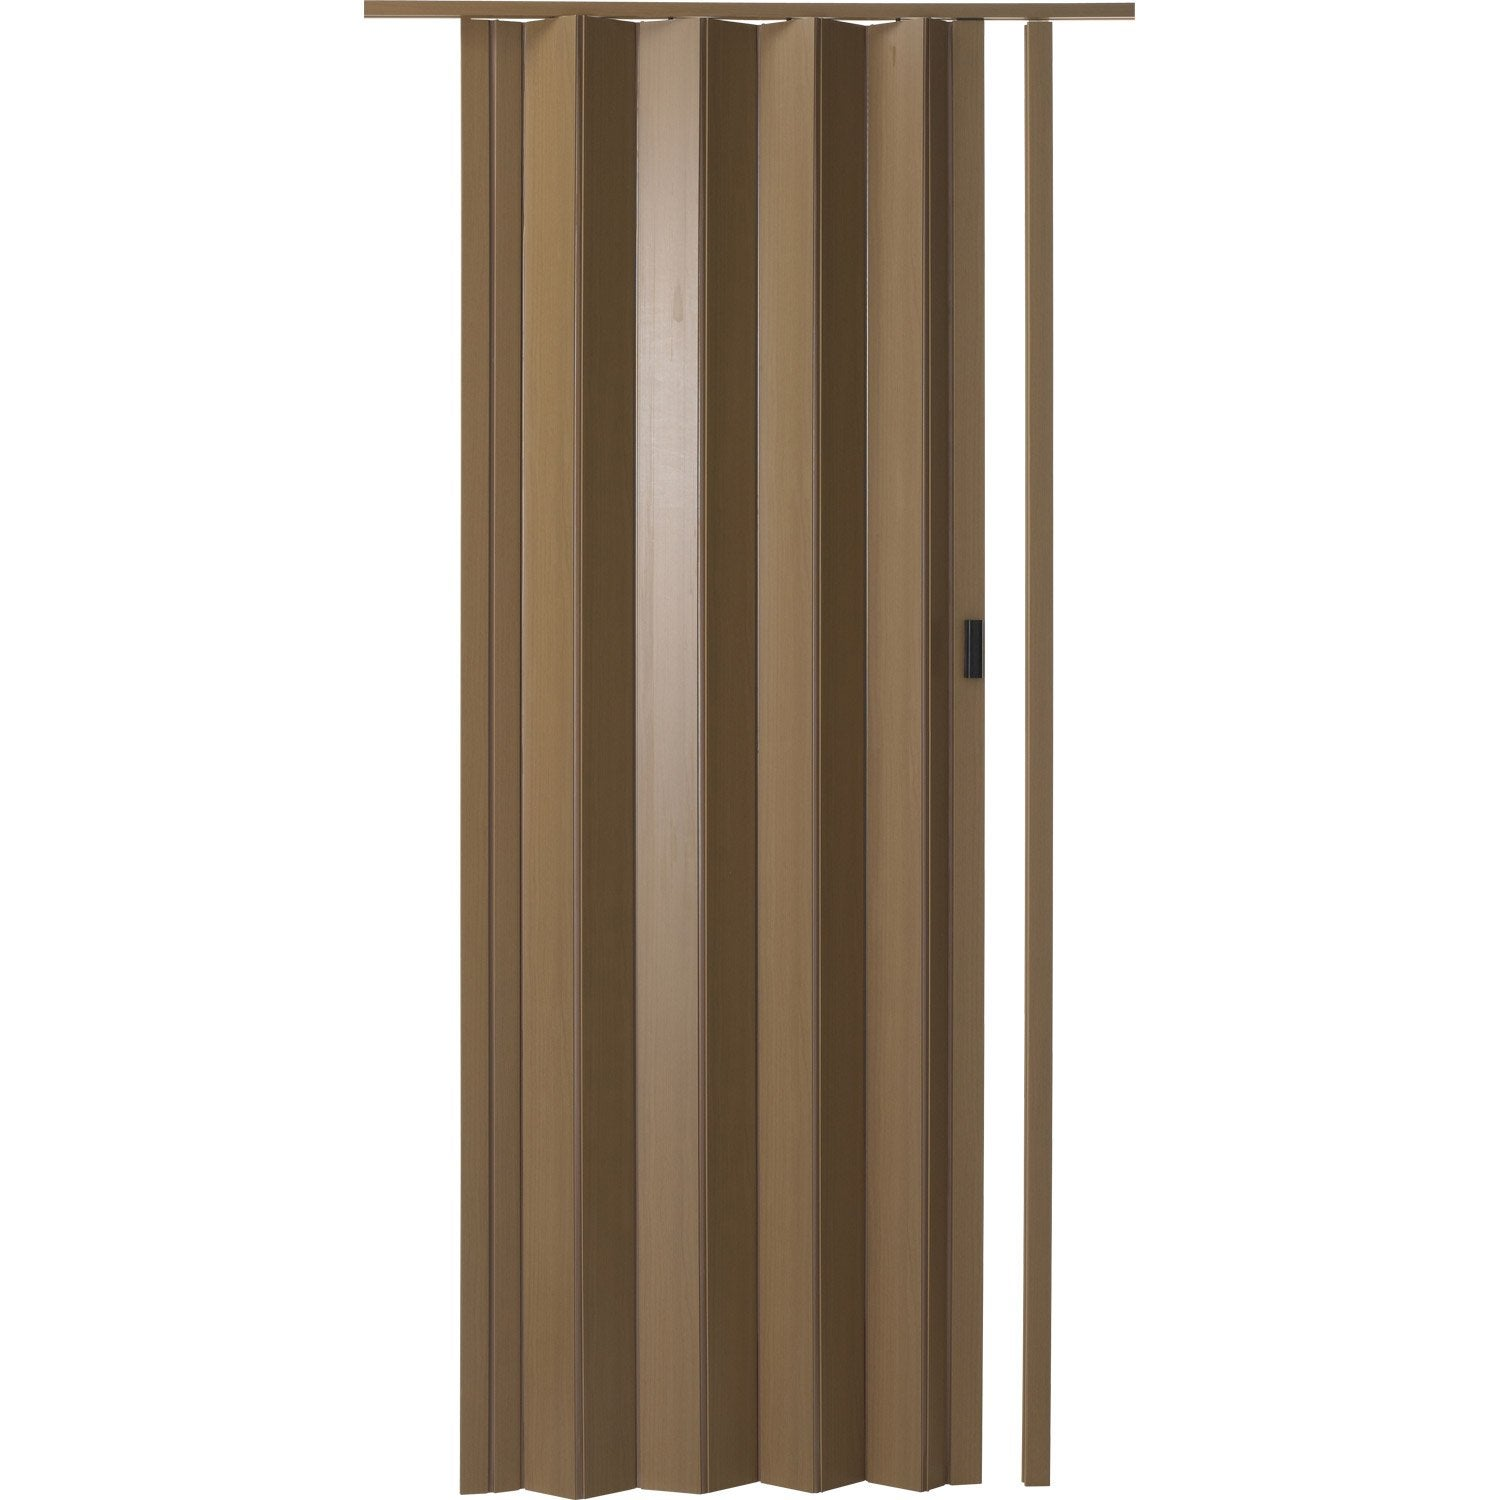 Porte accord on rio en r sine de synth se noyer 205 x 85 cm leroy merlin - Rideau de porte exterieur leroy merlin ...